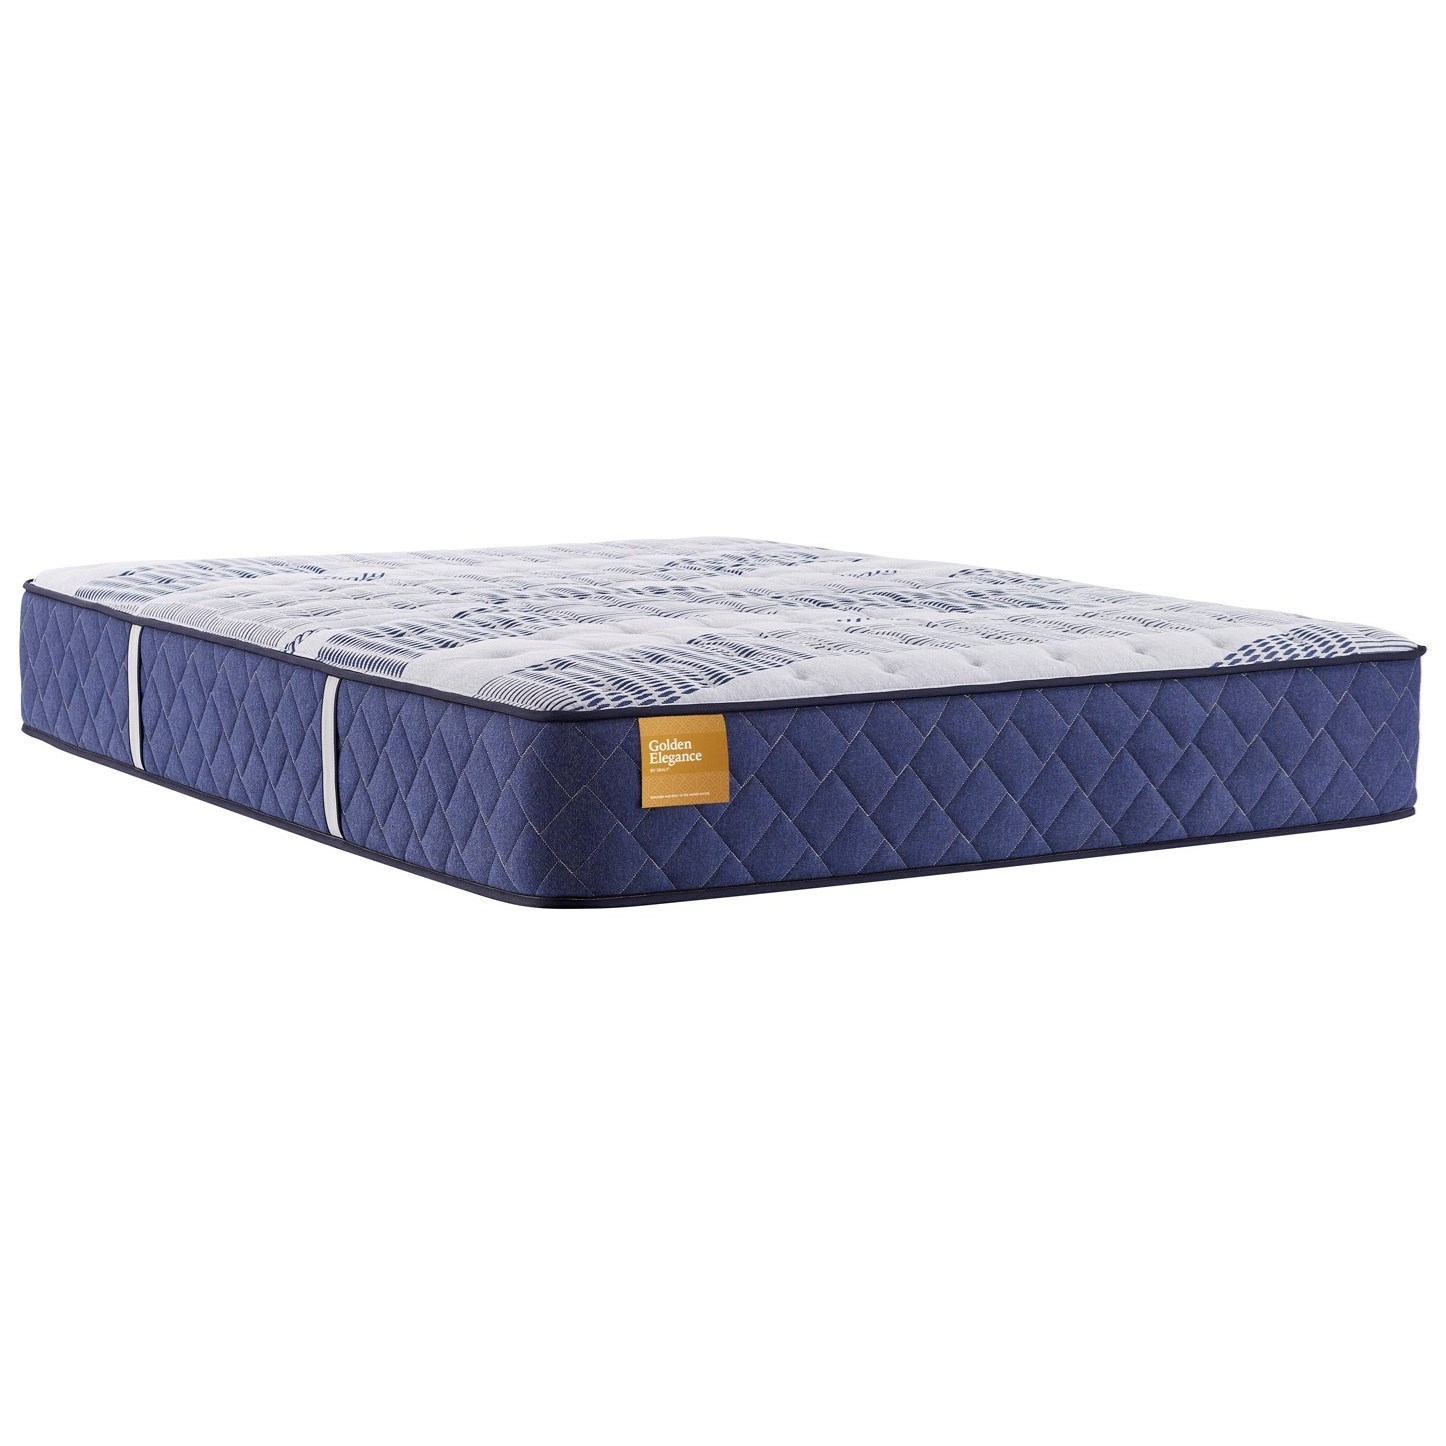 "Etherial Gold CF TT B4 Twin 12 1/2"" Cushion Firm Mattress by Sealy at Beck's Furniture"